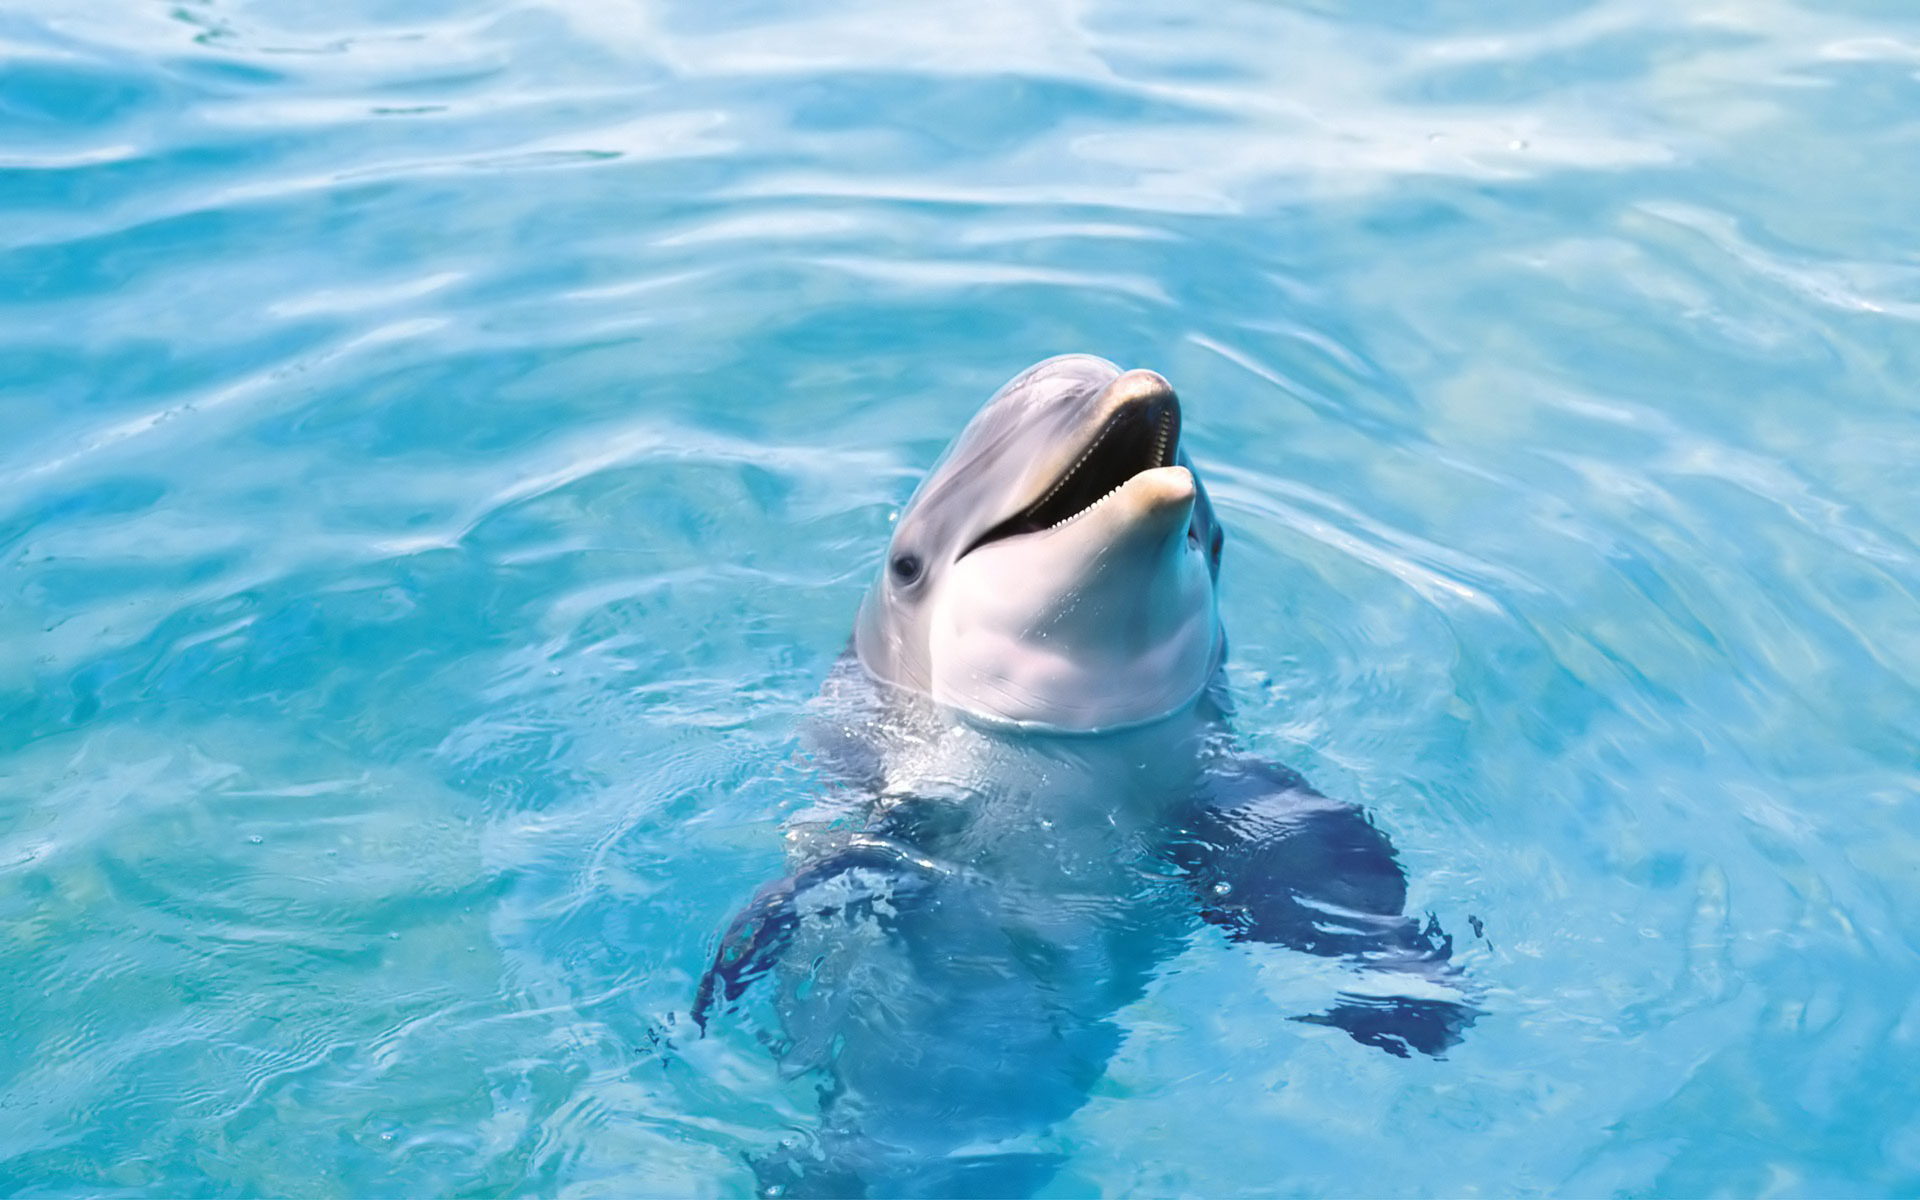 dolphin animals Wallpaper and make this wallpaper for your desktop 1920x1200